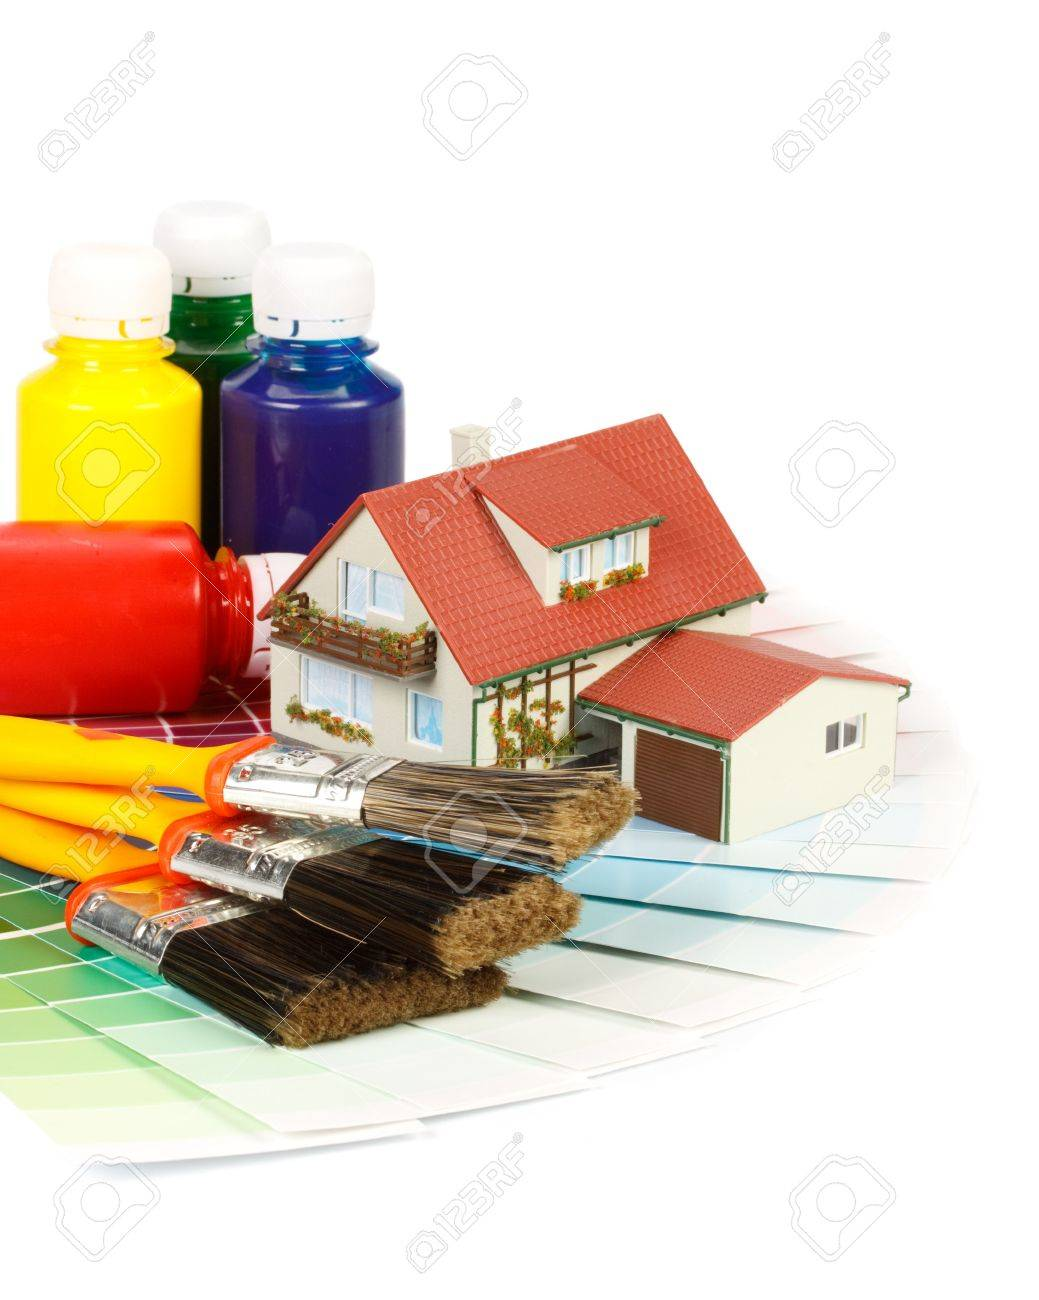 Various painting tools, miniature house and color guide on a white background Stock Photo - 5286066